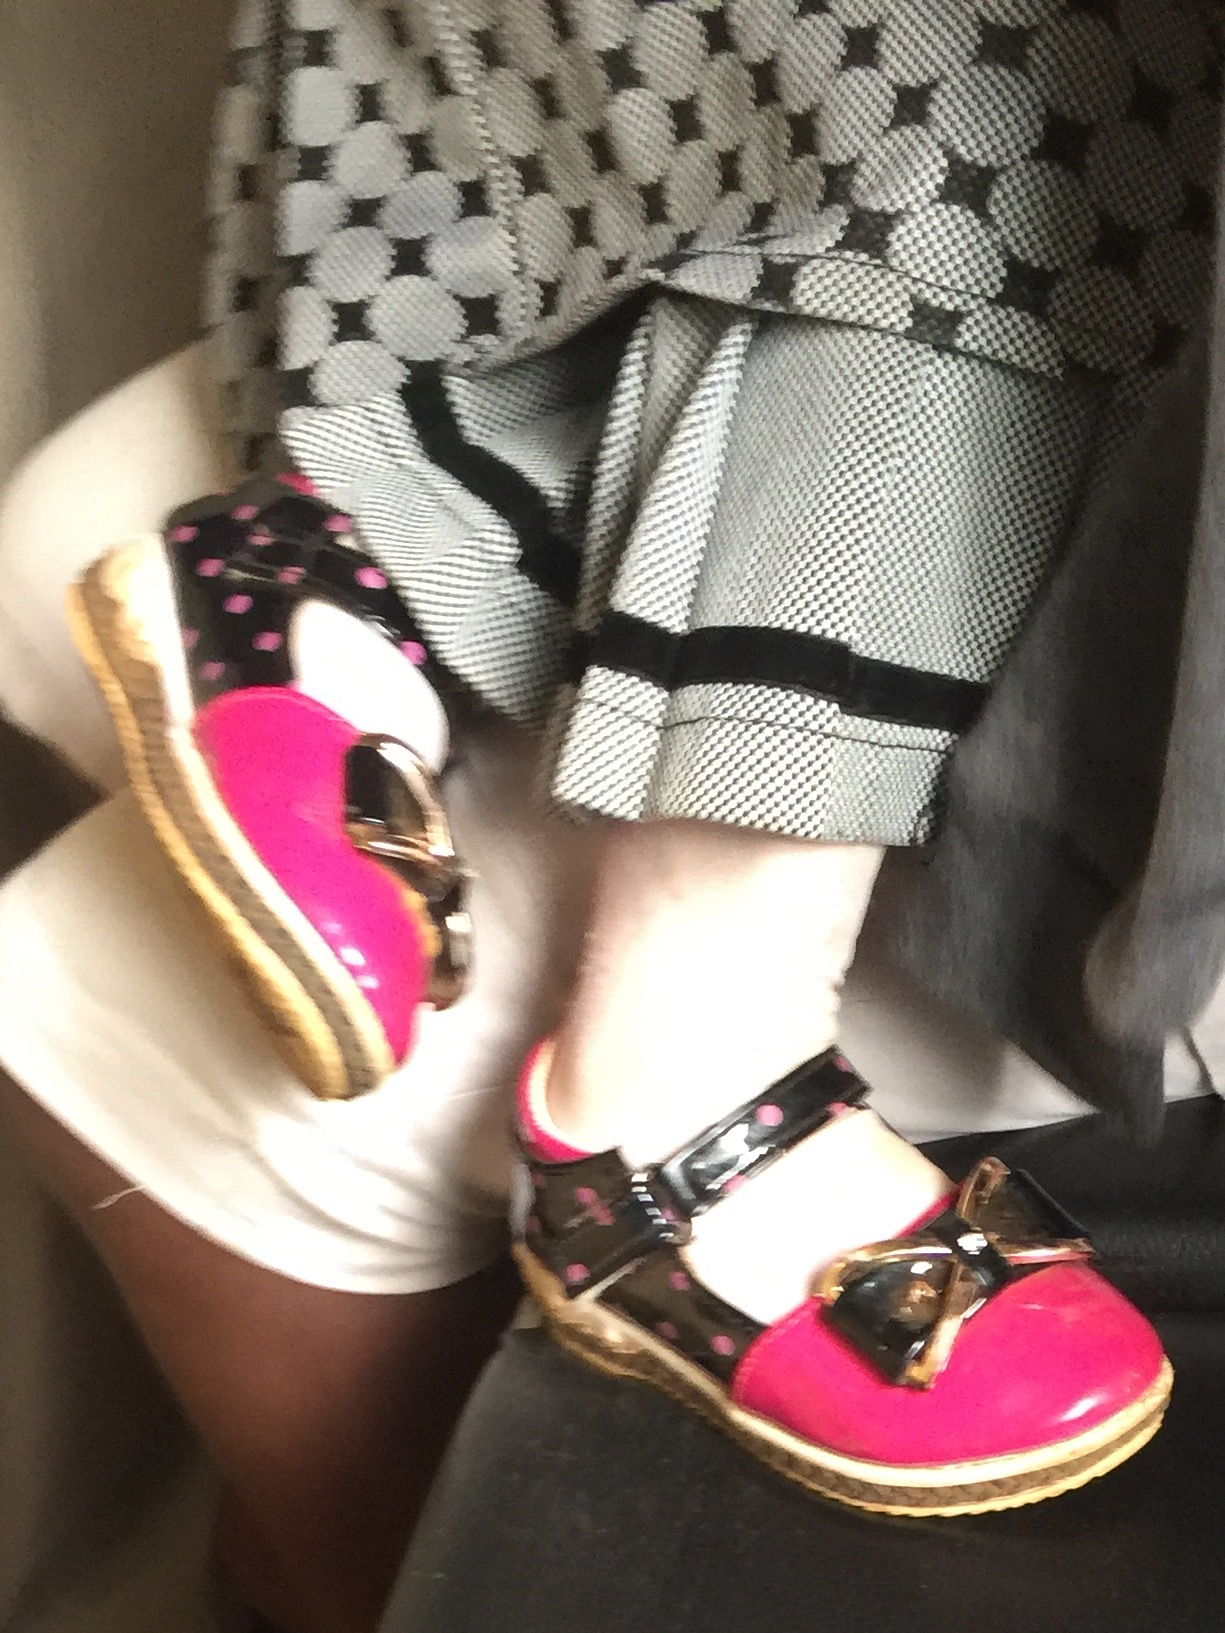 World's cutest shoes